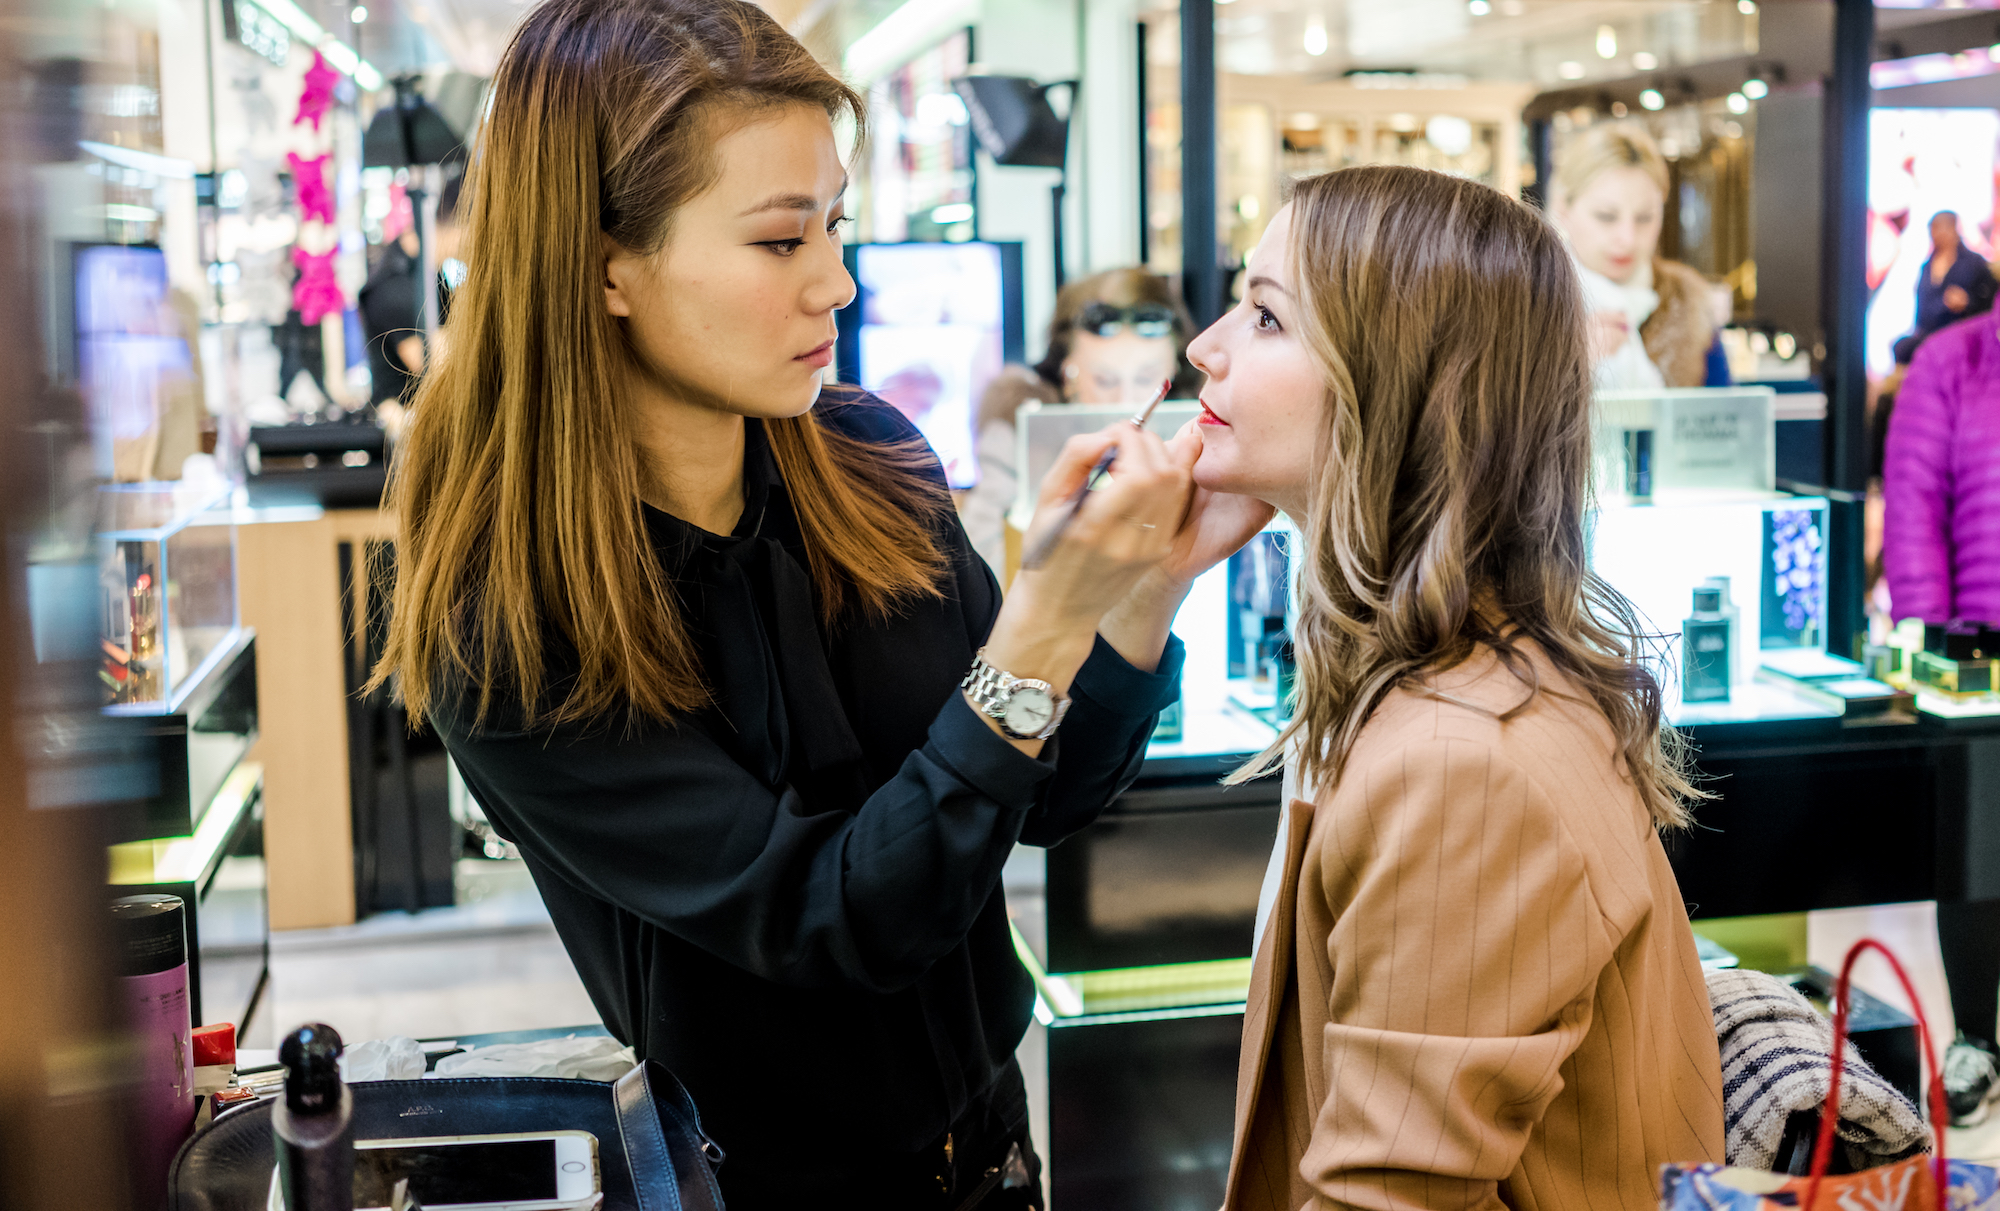 Getting my make-up done at YSL Beauty.